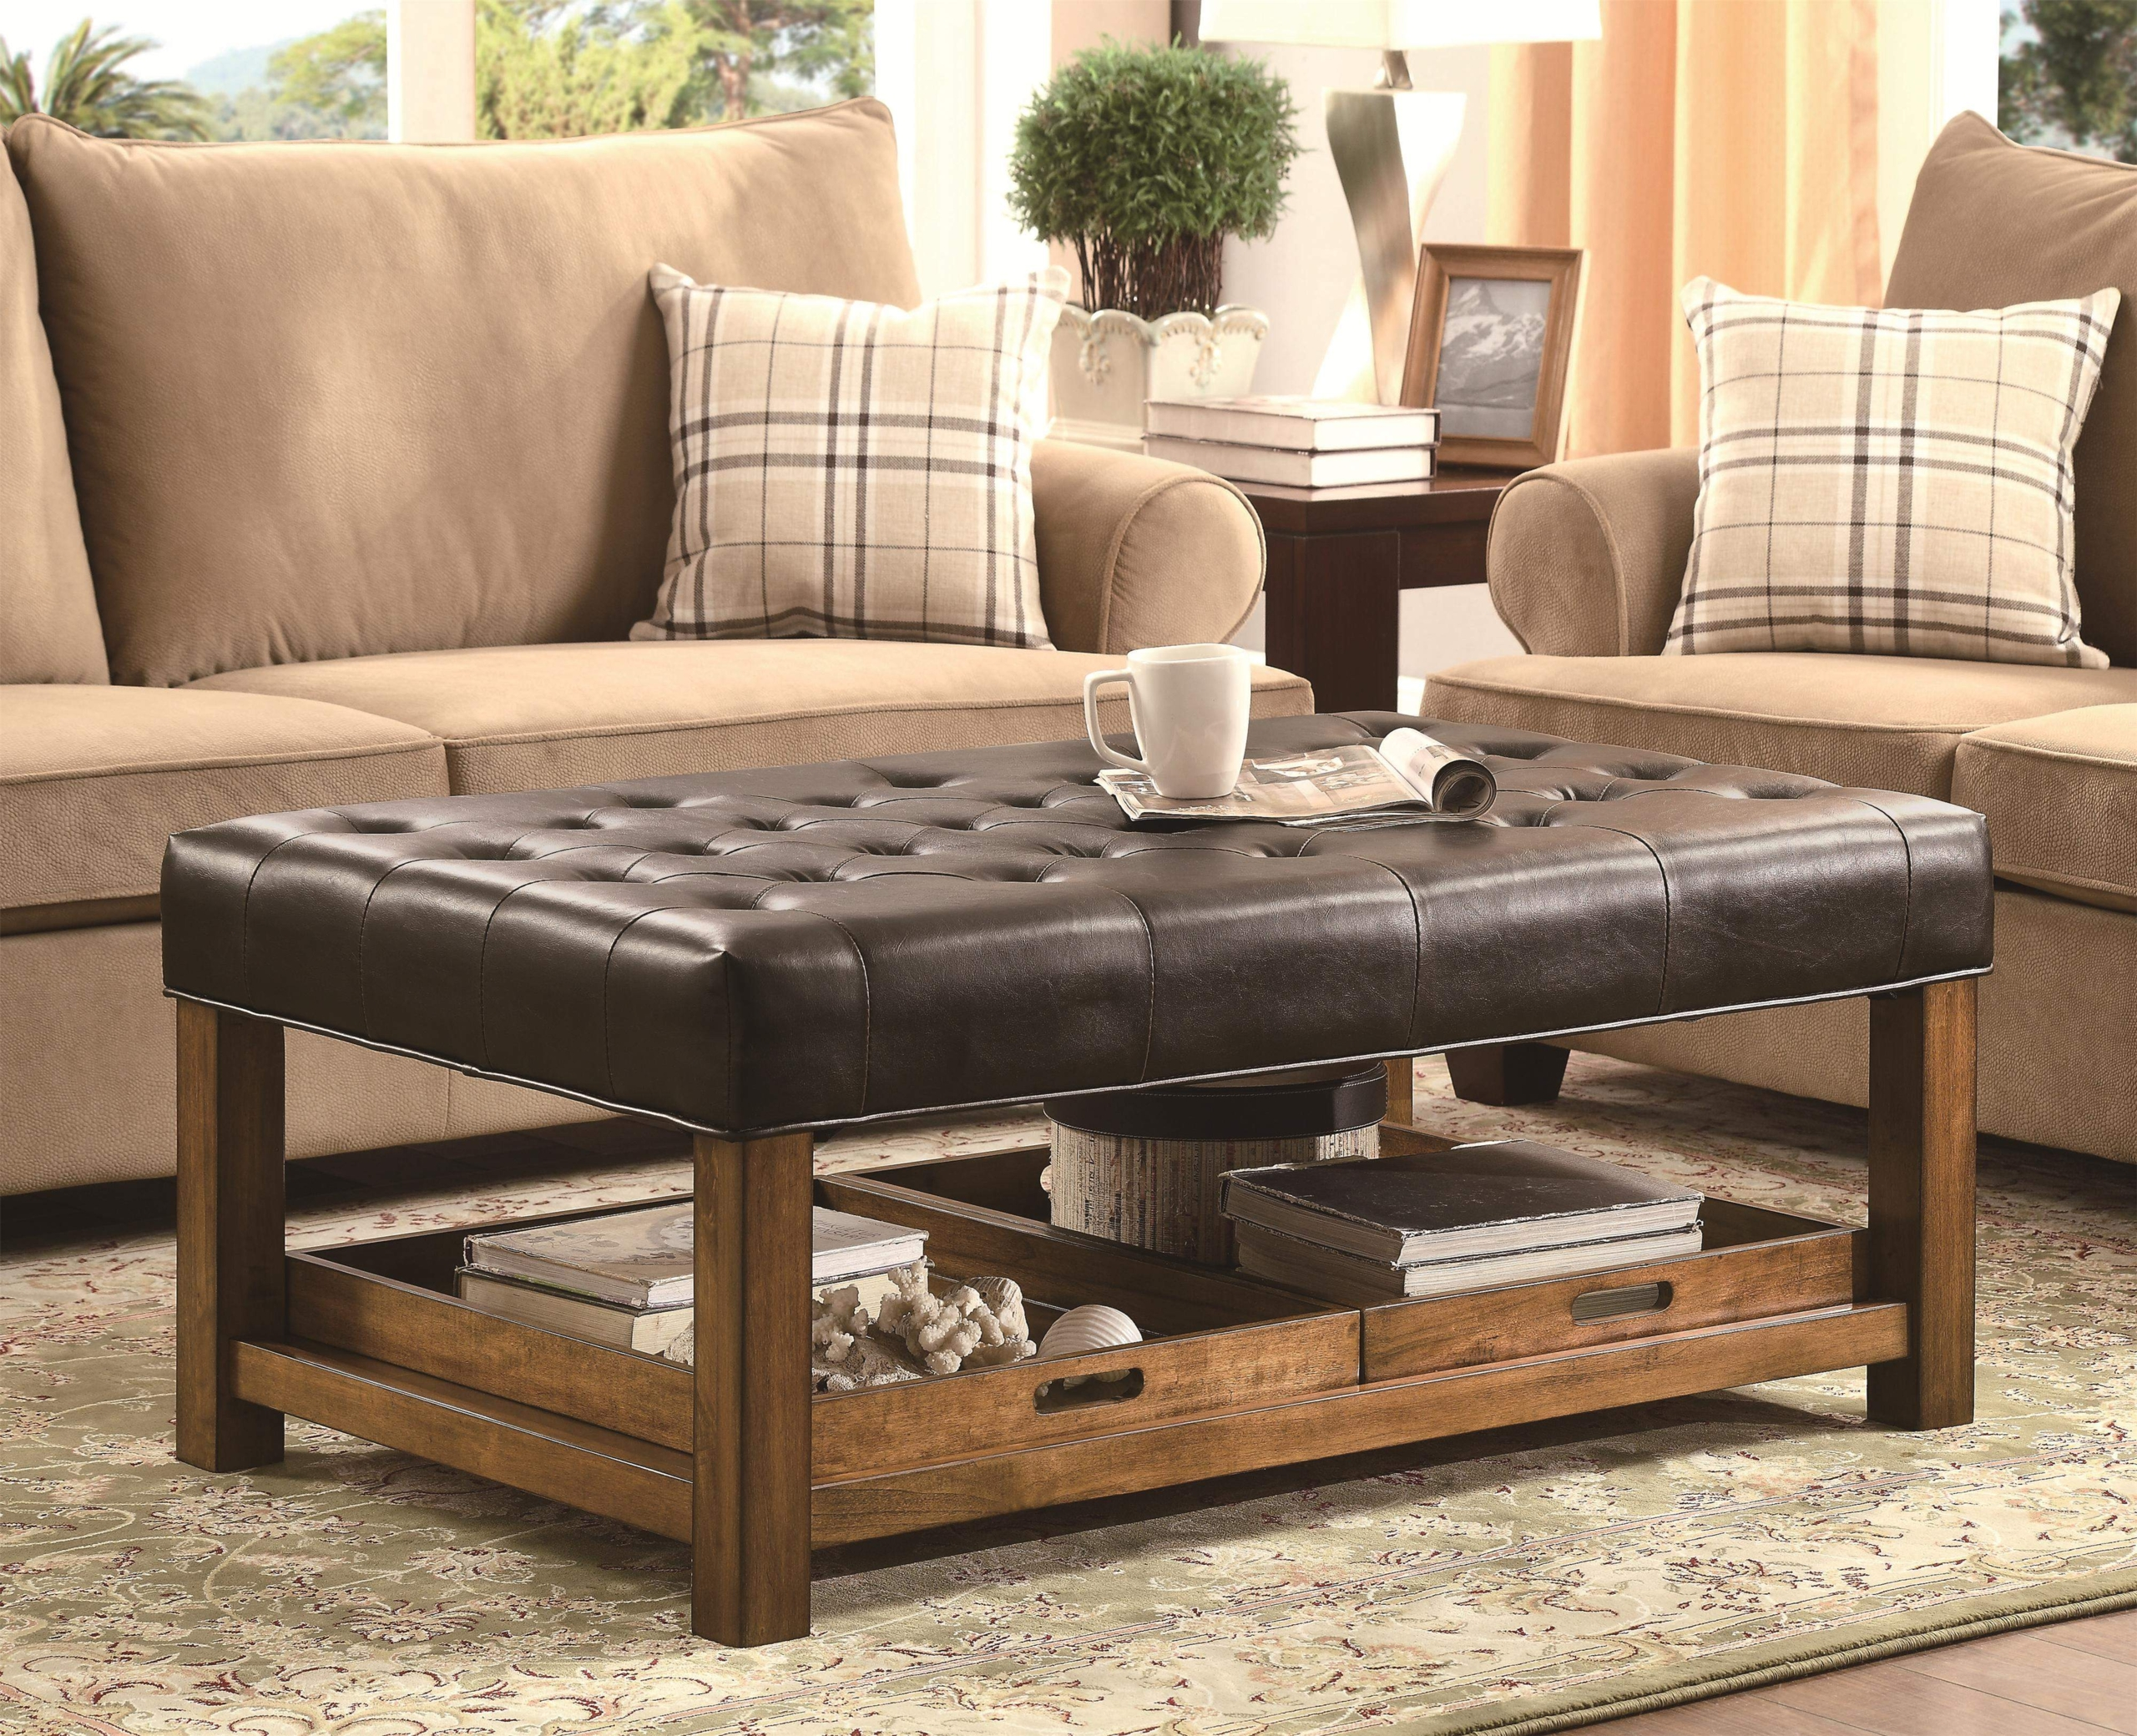 Exceptionnel Leather Tufted Ottoman Coffee Table